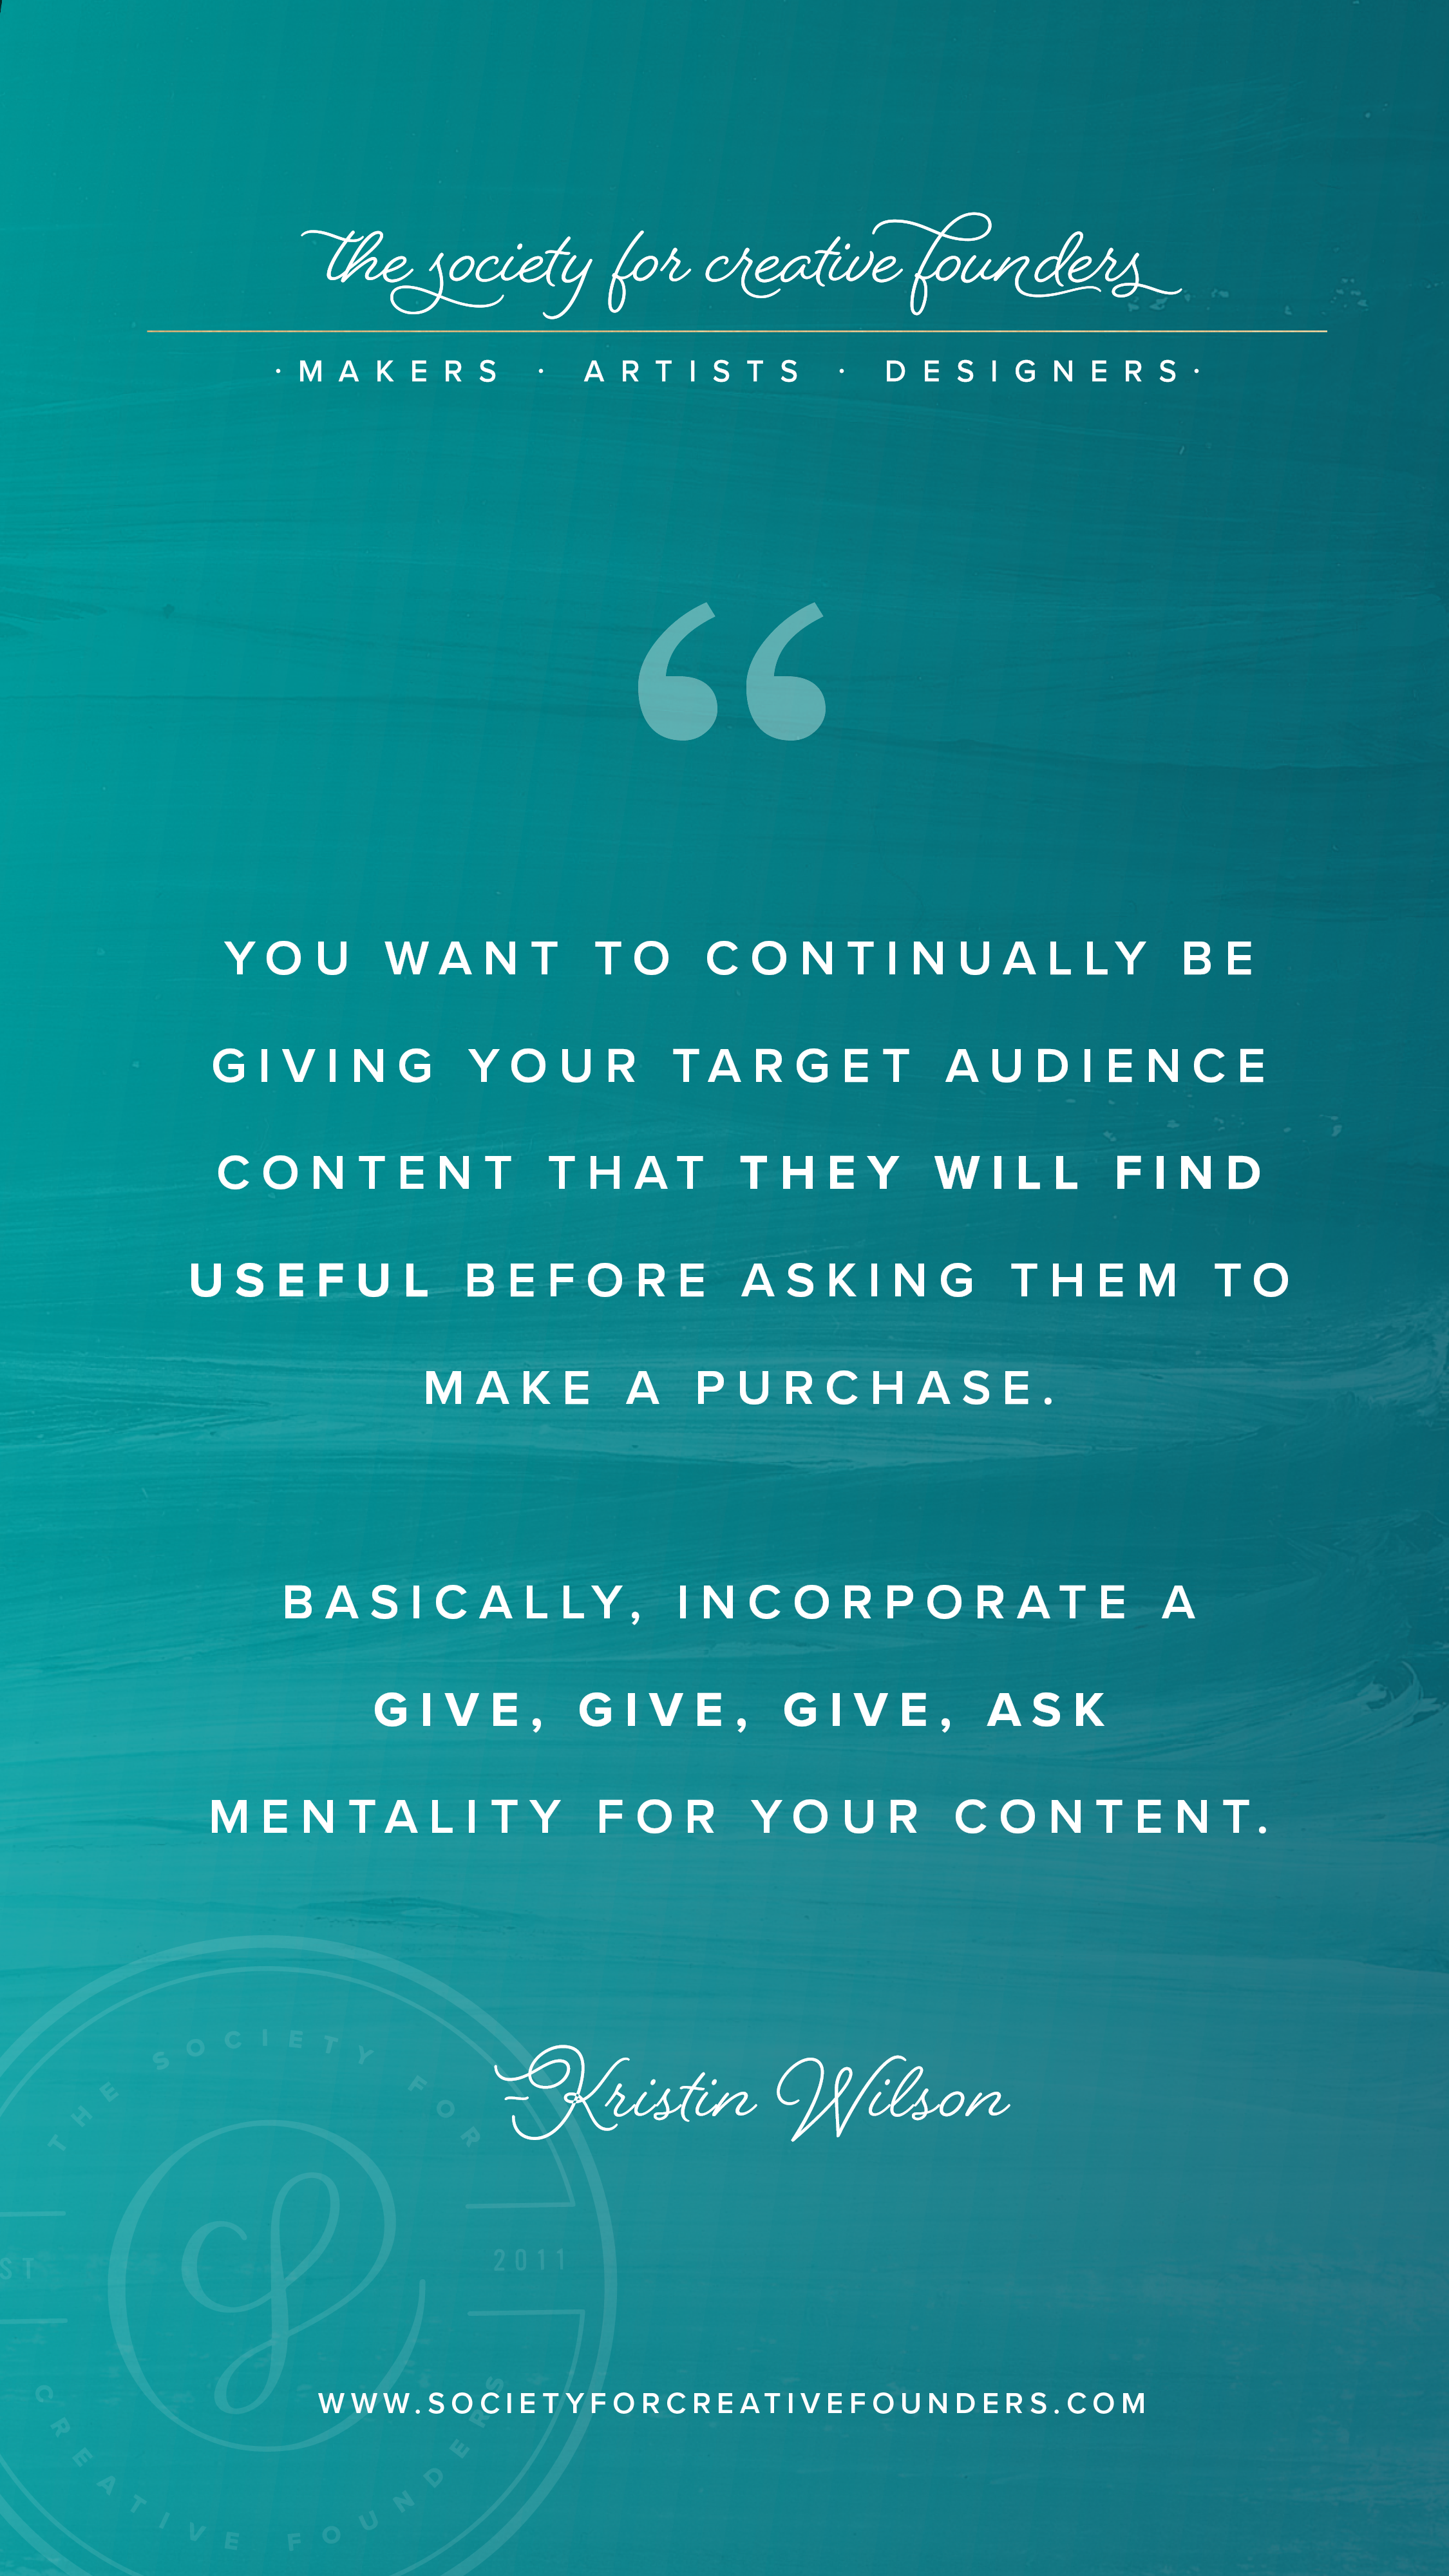 Give, Give, Give Ask for Content Marketing - Society for Creative Founders